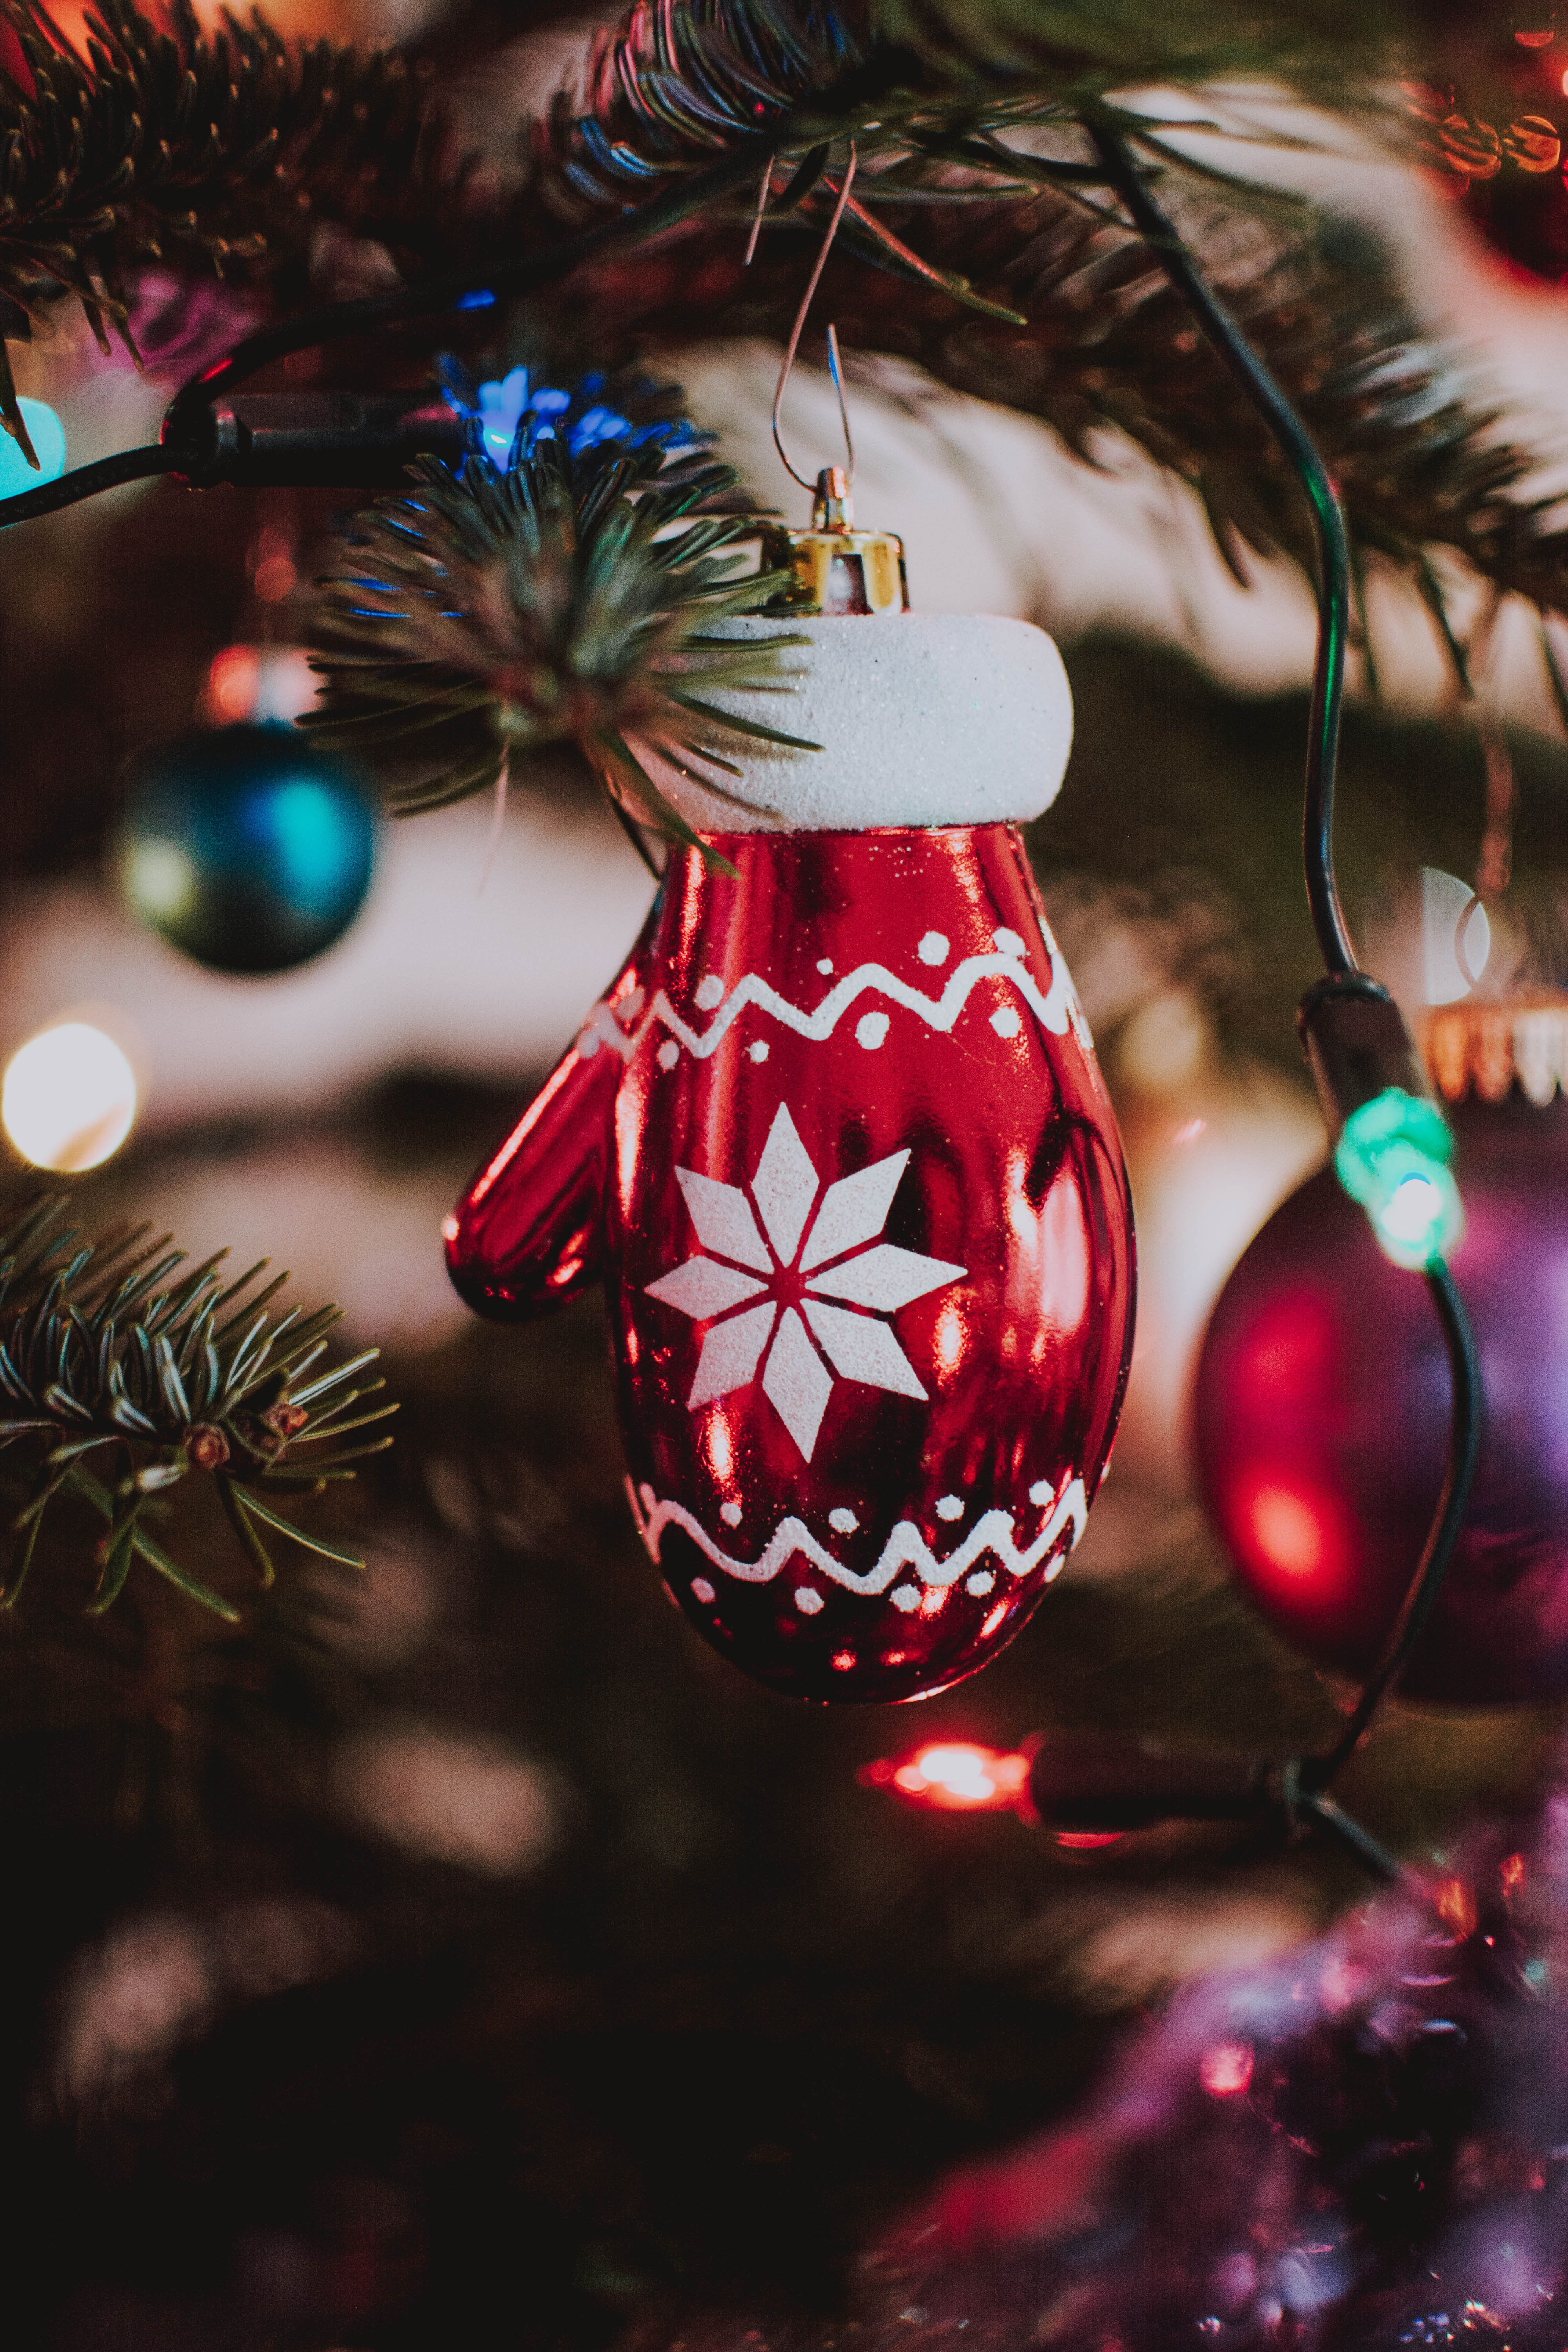 108063 download wallpaper Holidays, Christmas Tree Toy, Mitten, Christmas, New Year, Decoration screensavers and pictures for free